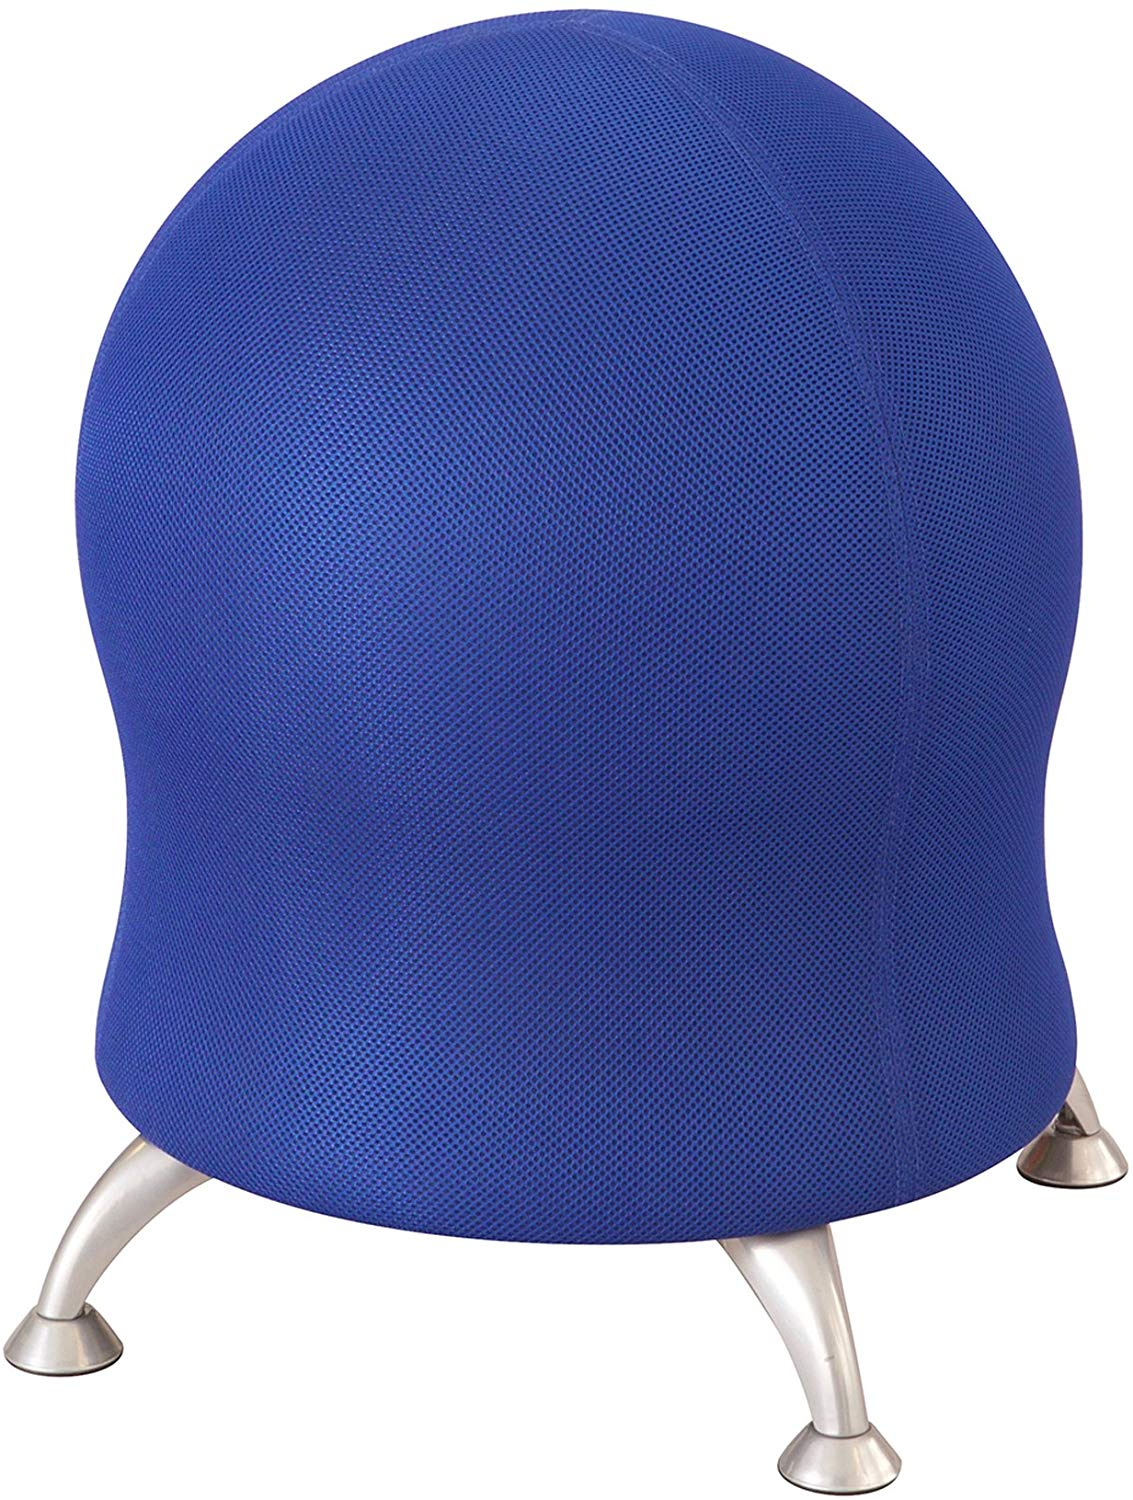 4750BU Polyester Mesh Zenergy Ball Chair by Safco